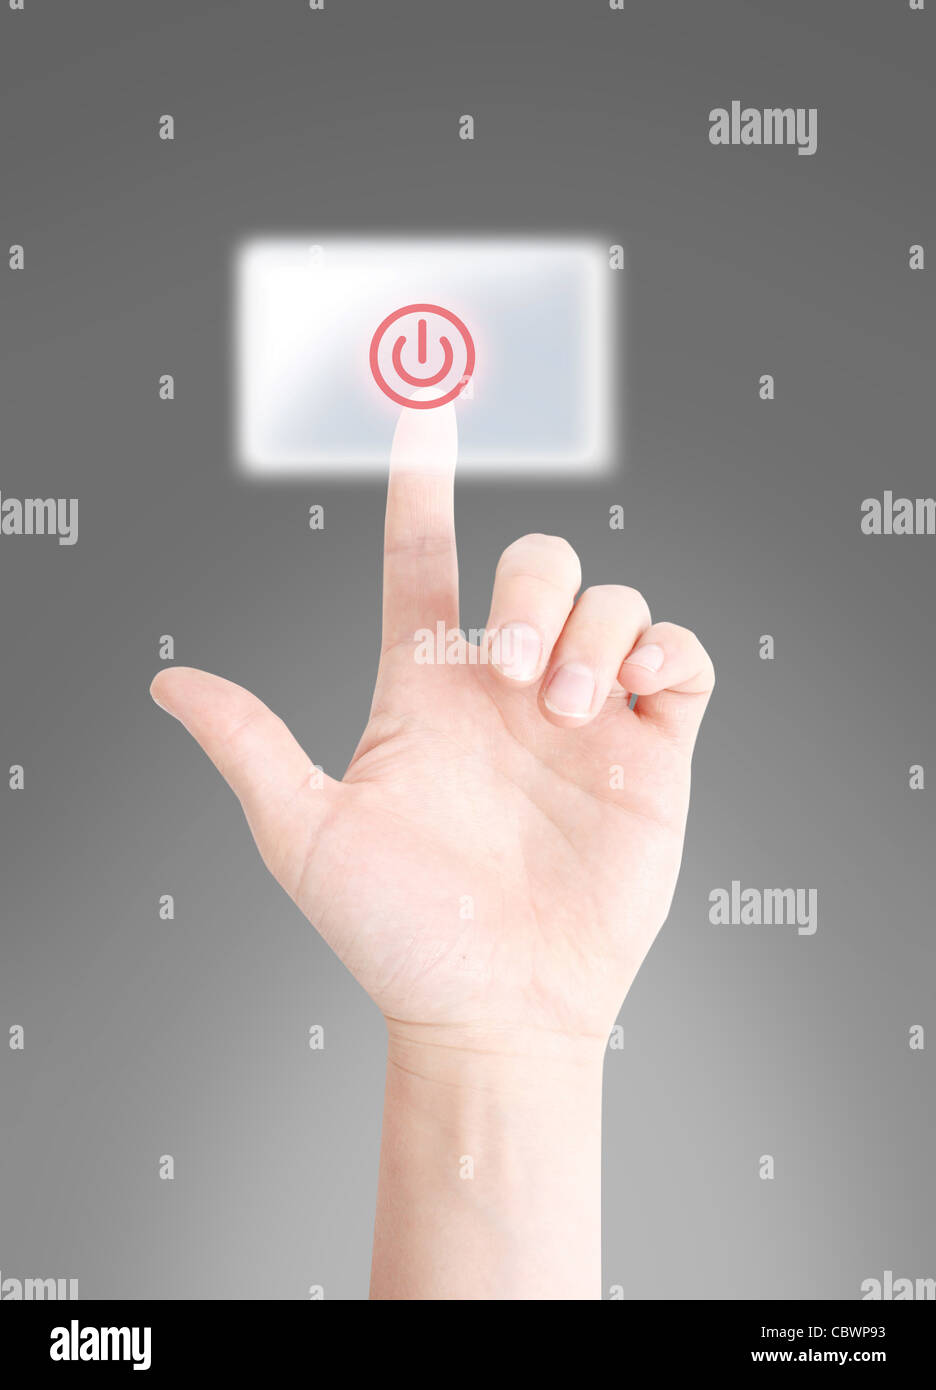 Turn off button - Stock Image